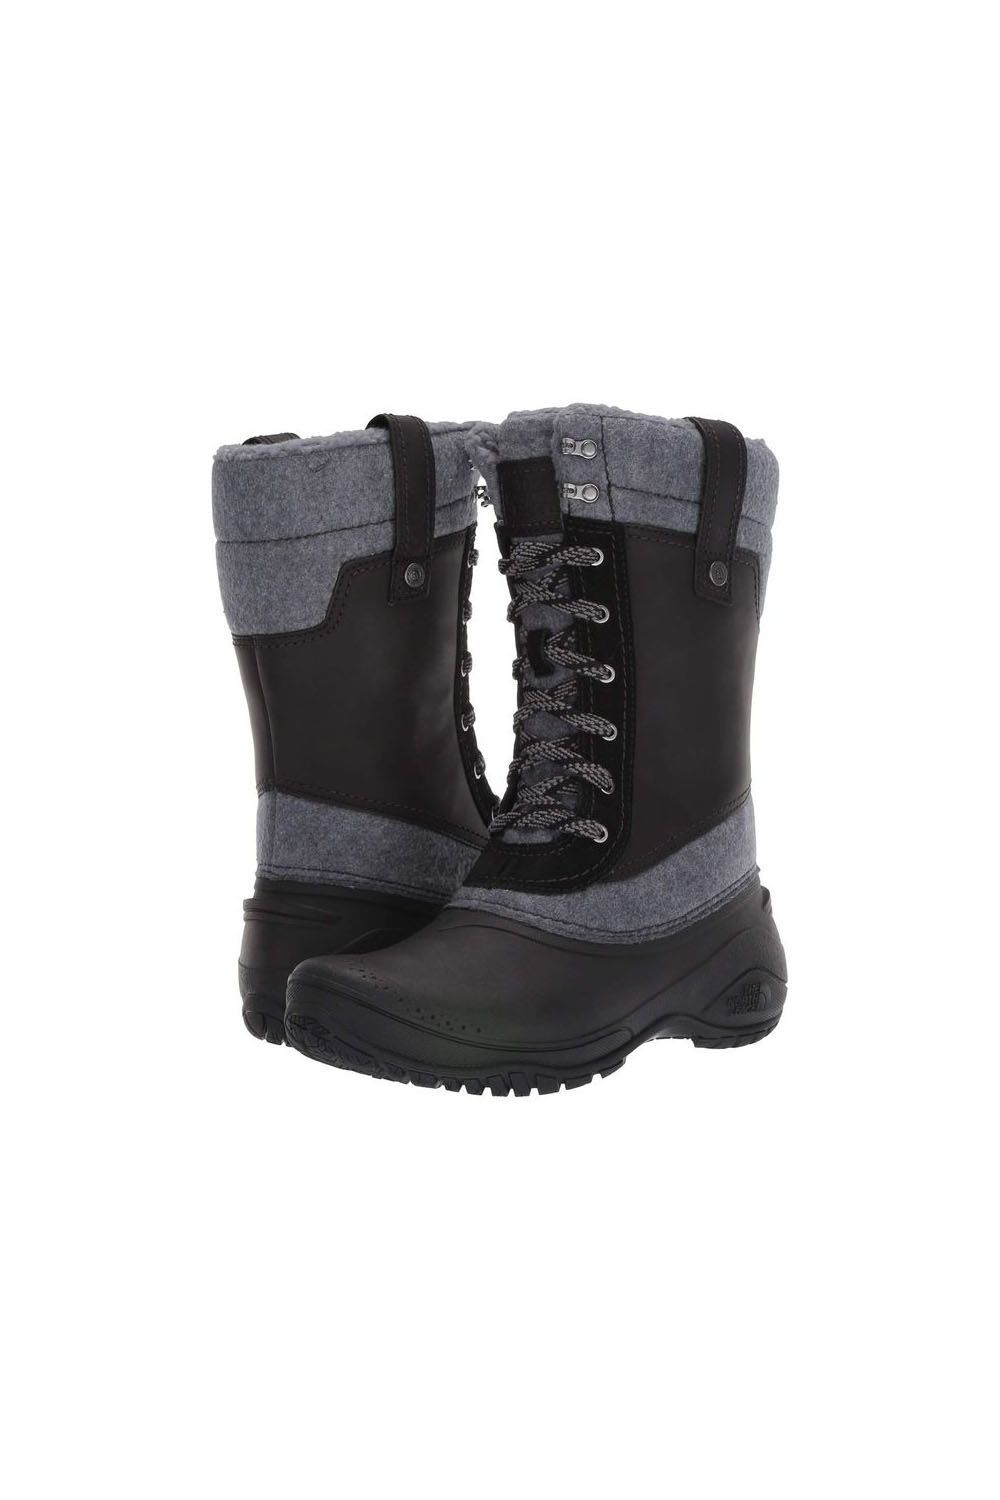 17 Stylish Winter Boots for Women 2020 — Trendy Snow Boots